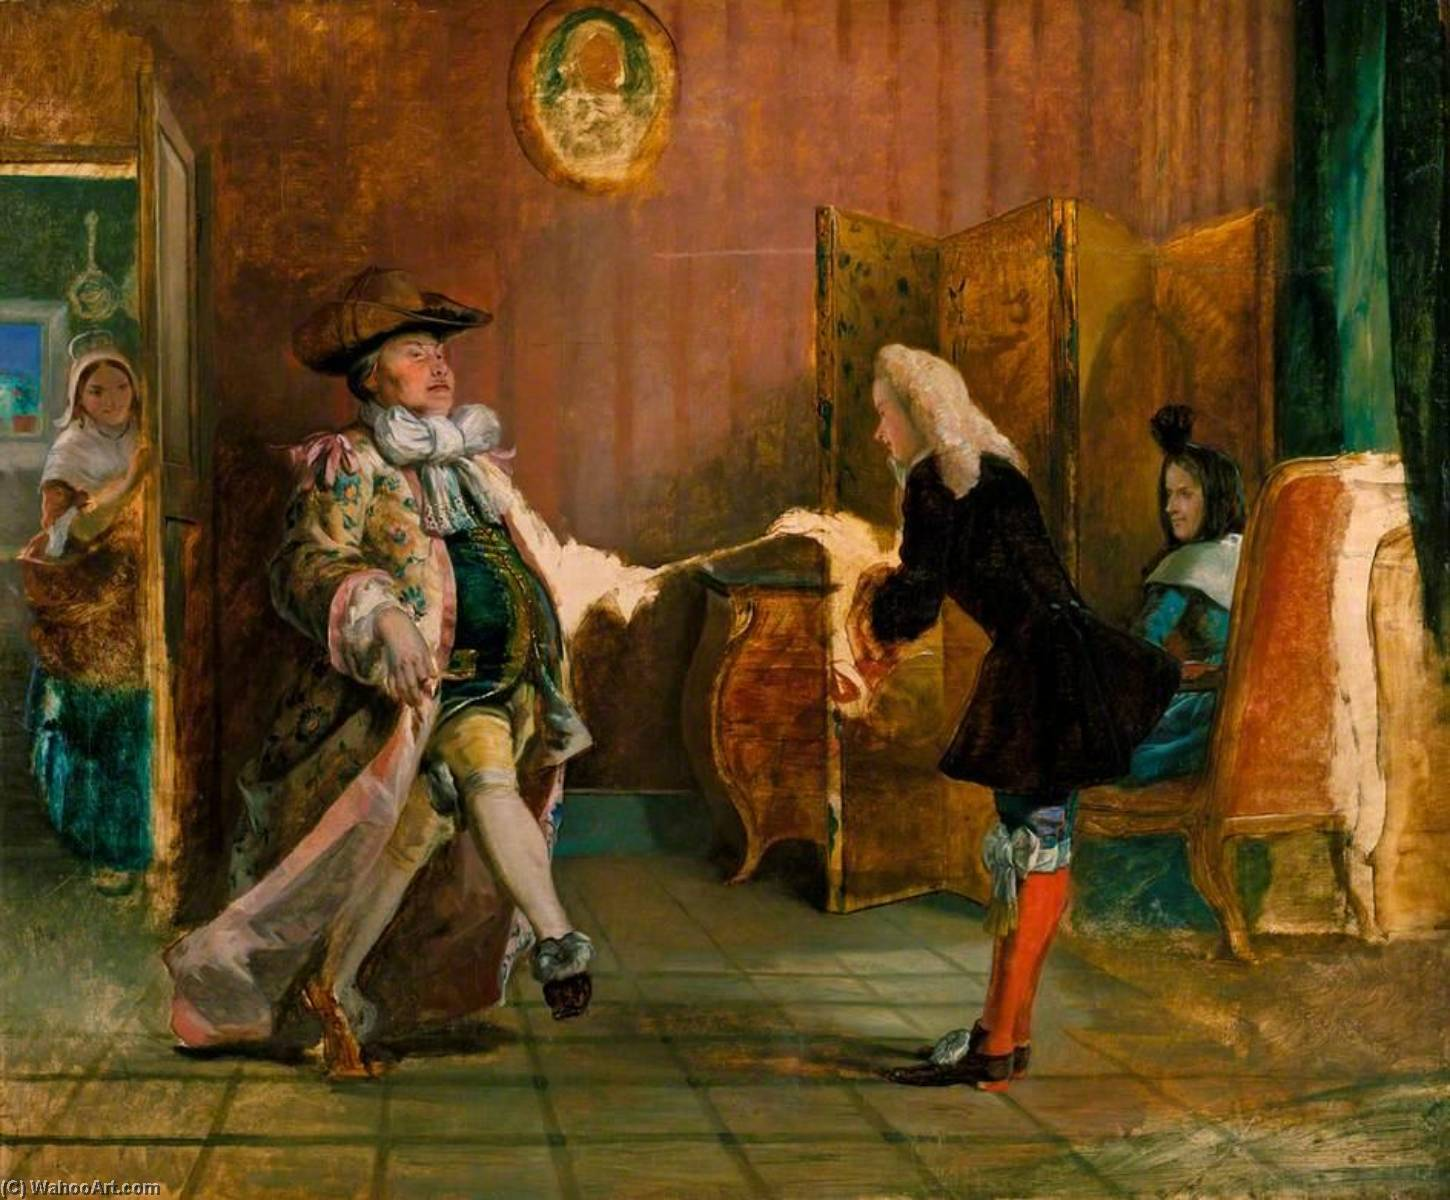 Monsieur Jourdain's Dancing Lesson (from Molière's 'Le Bourgeois Gentilhomme', Act II, Scene 1), Oil On Canvas by William Powell Frith (1819-1909, United Kingdom)